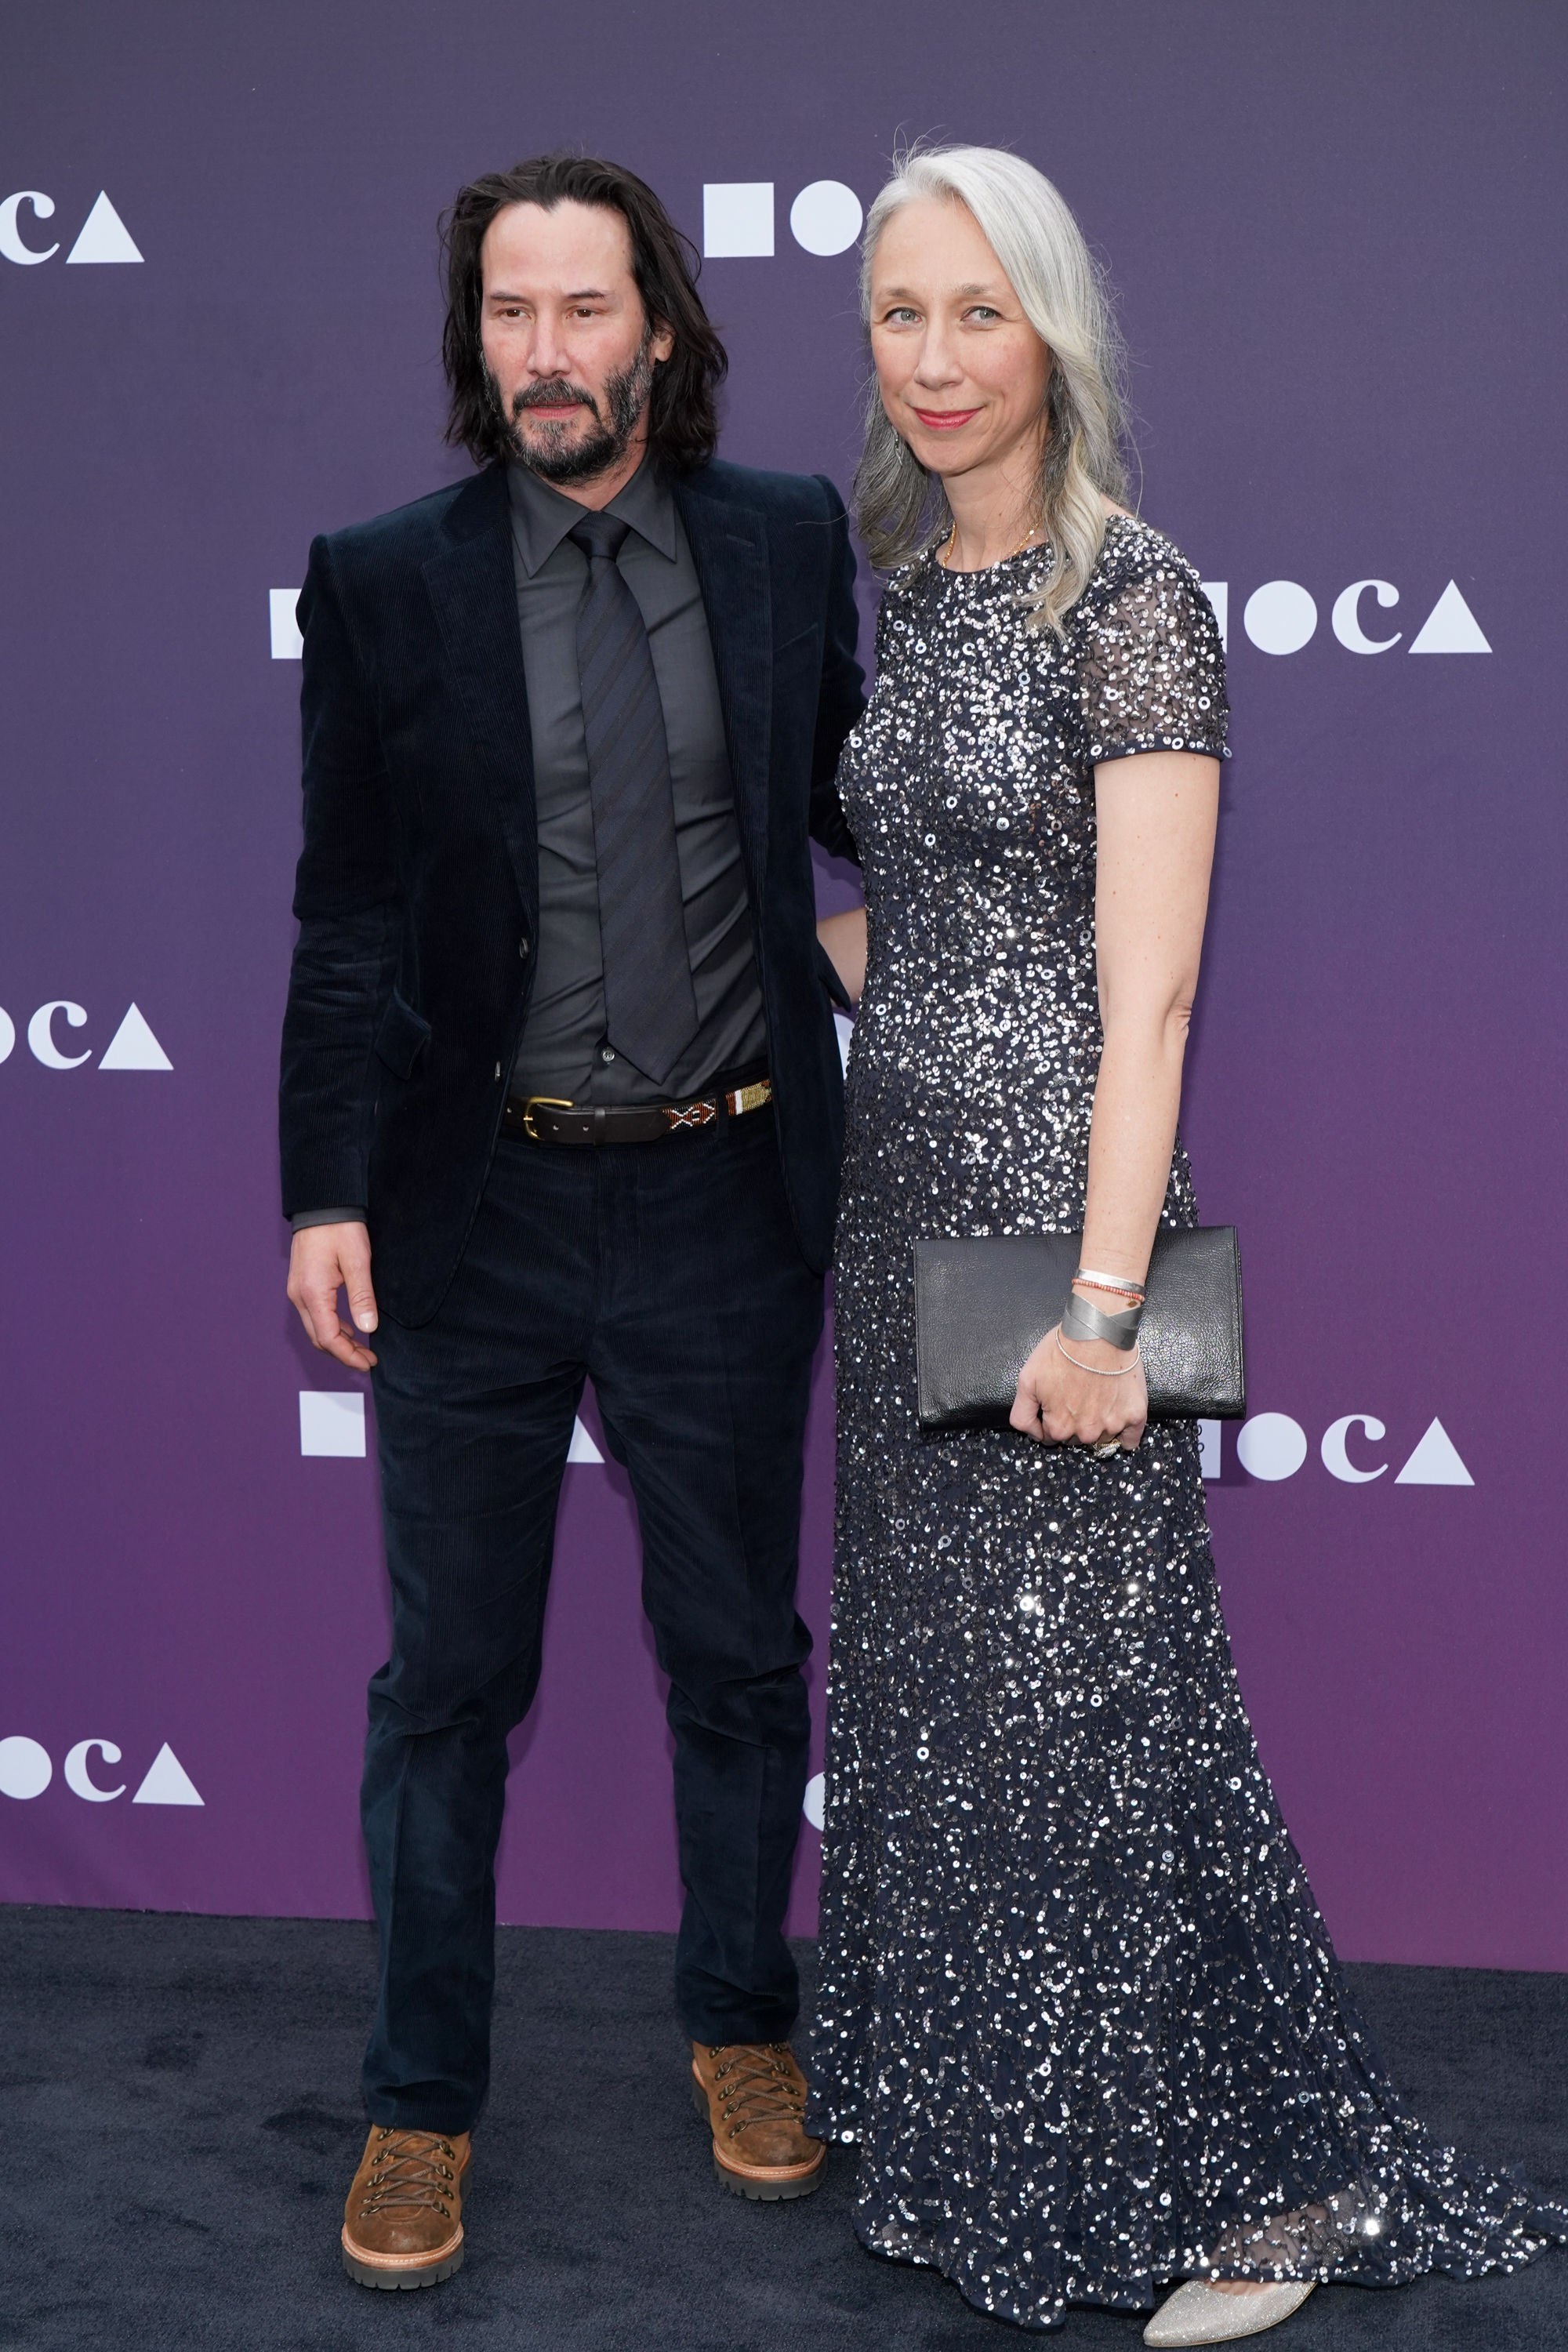 Keanu Reeves and Alexandra Grant attend the MOCA Benefit 2019 at The Geffen Contemporary at MOCA on May 18 in Los Angeles. (Photo: Rachel Luna/WireImage)